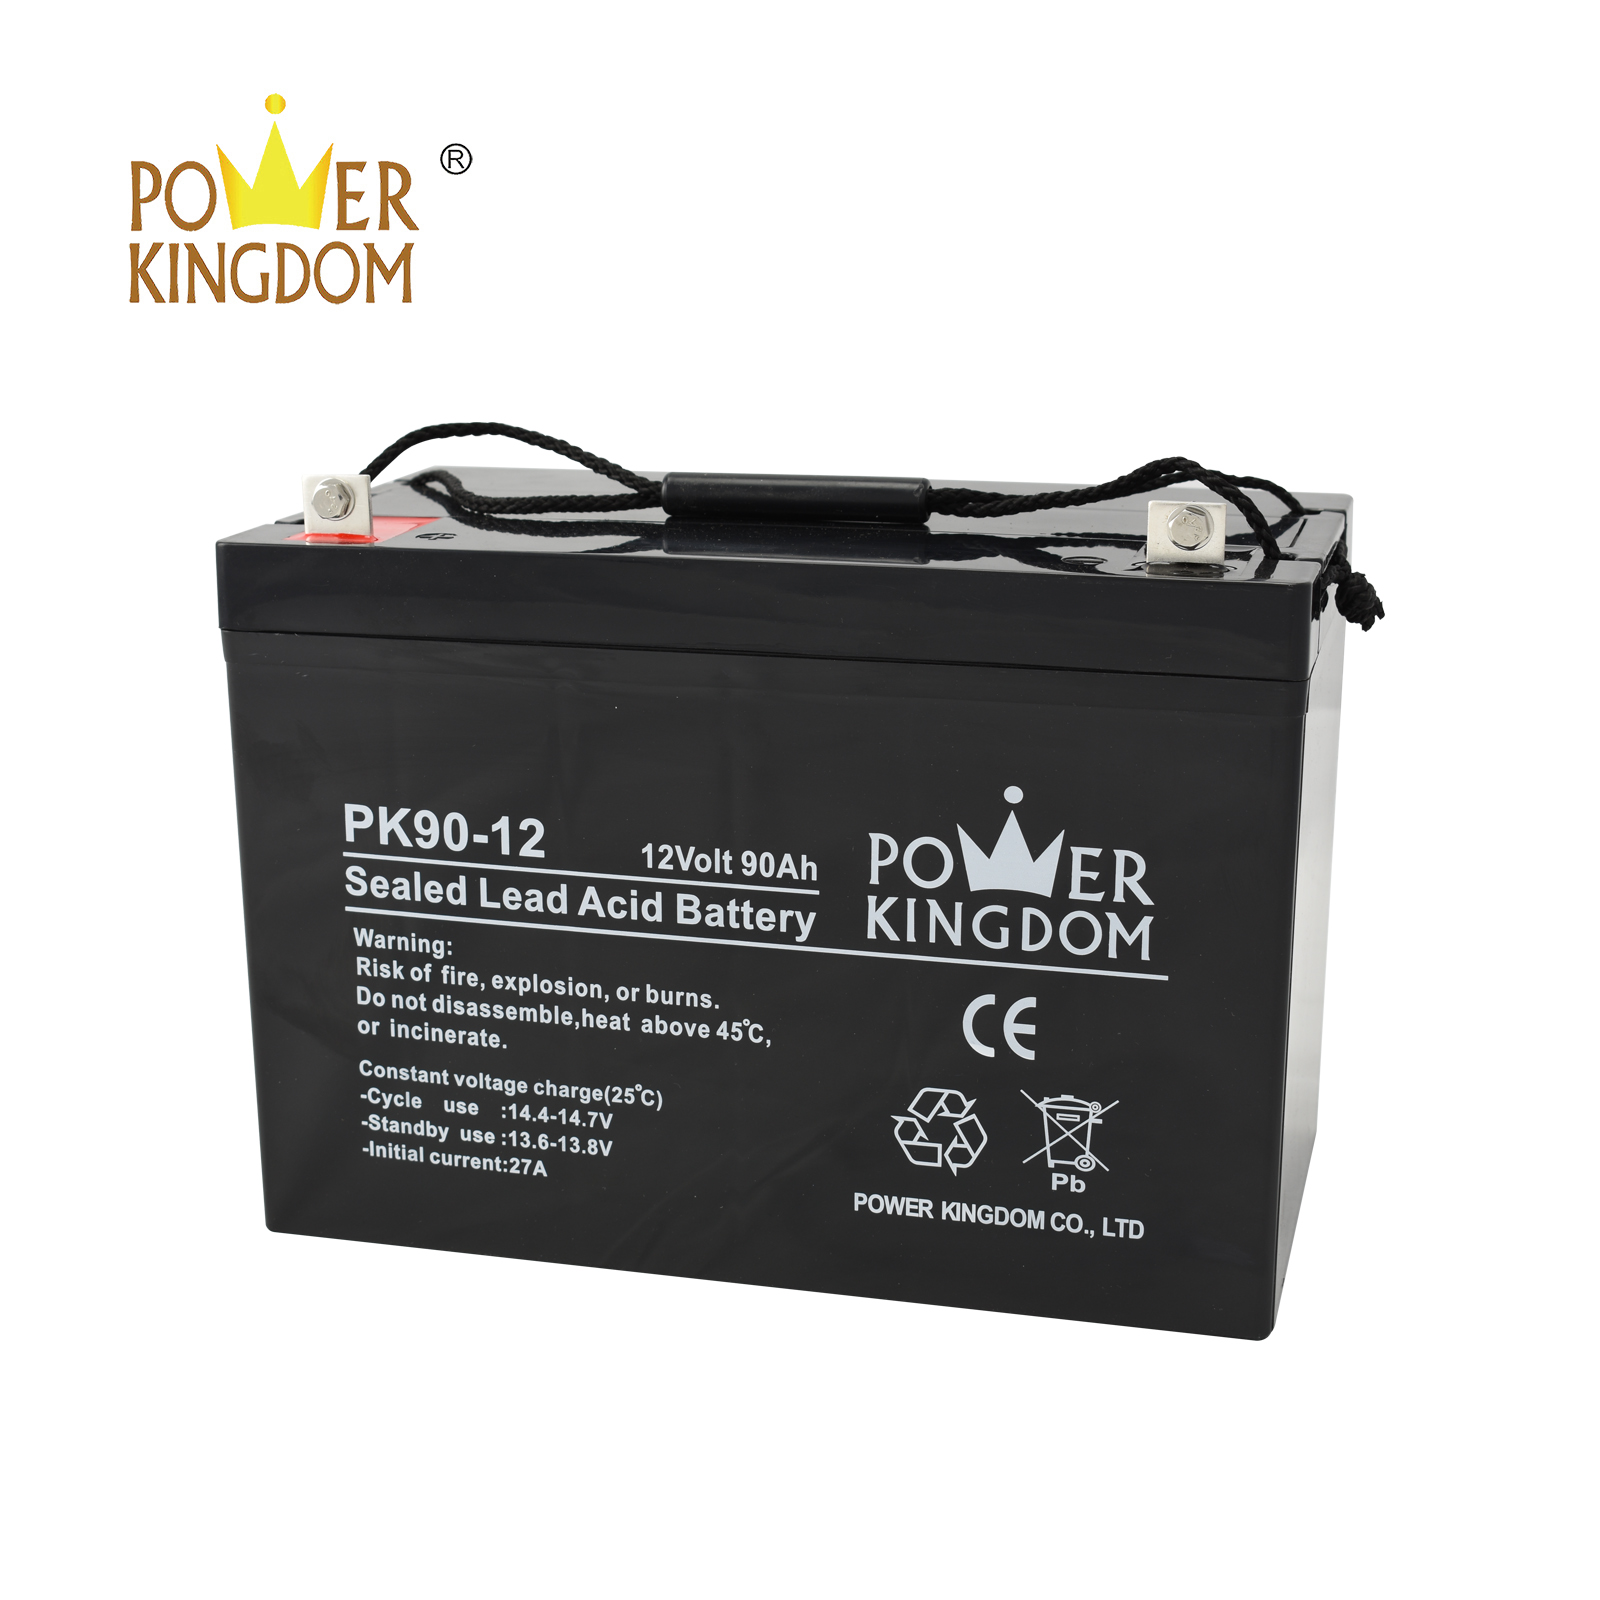 Power Kingdom advanced plate casters gel battery charging voltage factory price Automatic door system-2